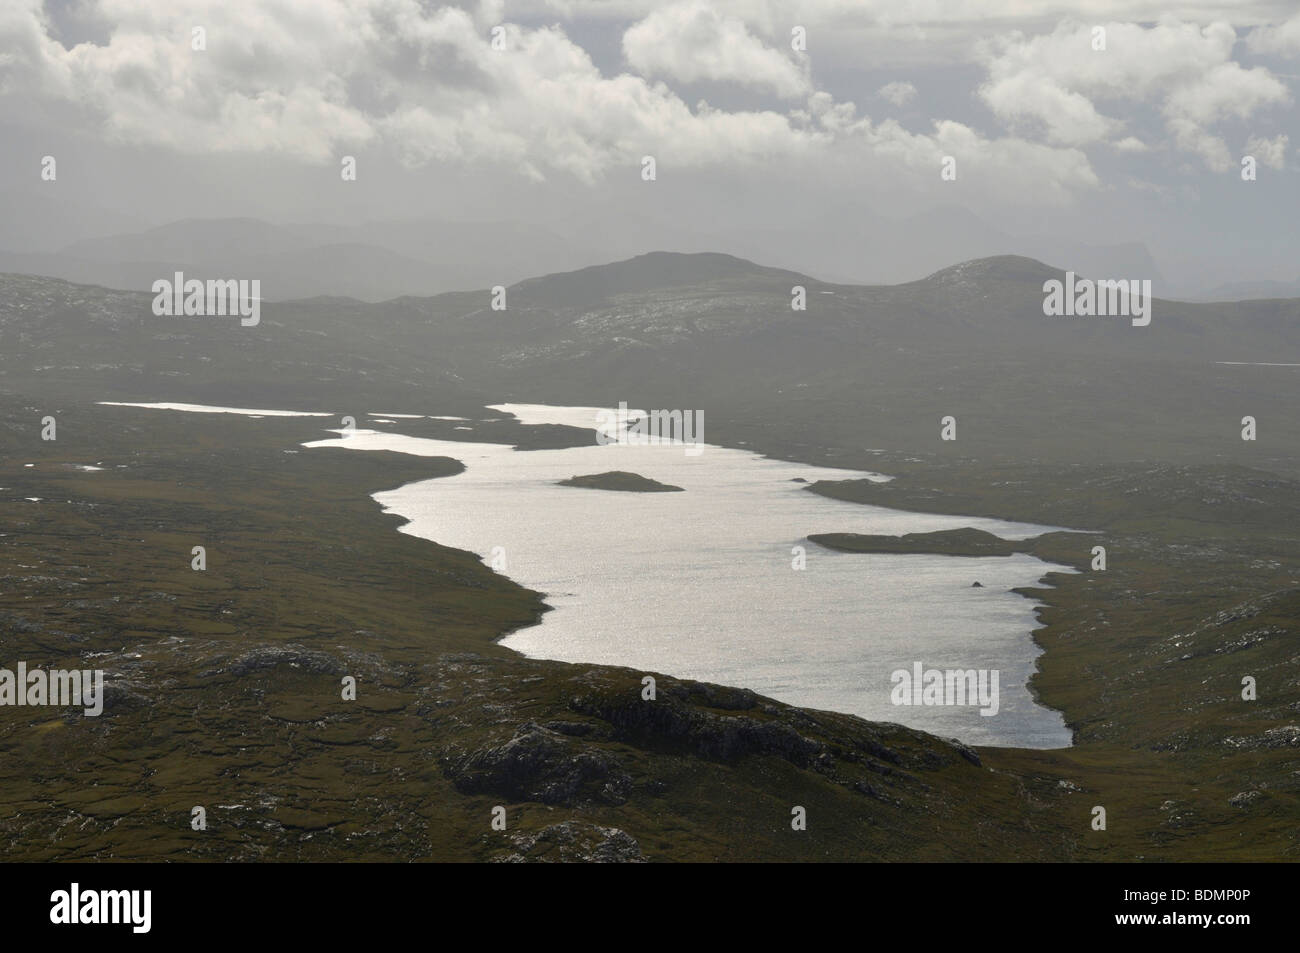 Loch Gruineabhat from Suaineabhal, Isle of Lewis, Scotland - Stock Image